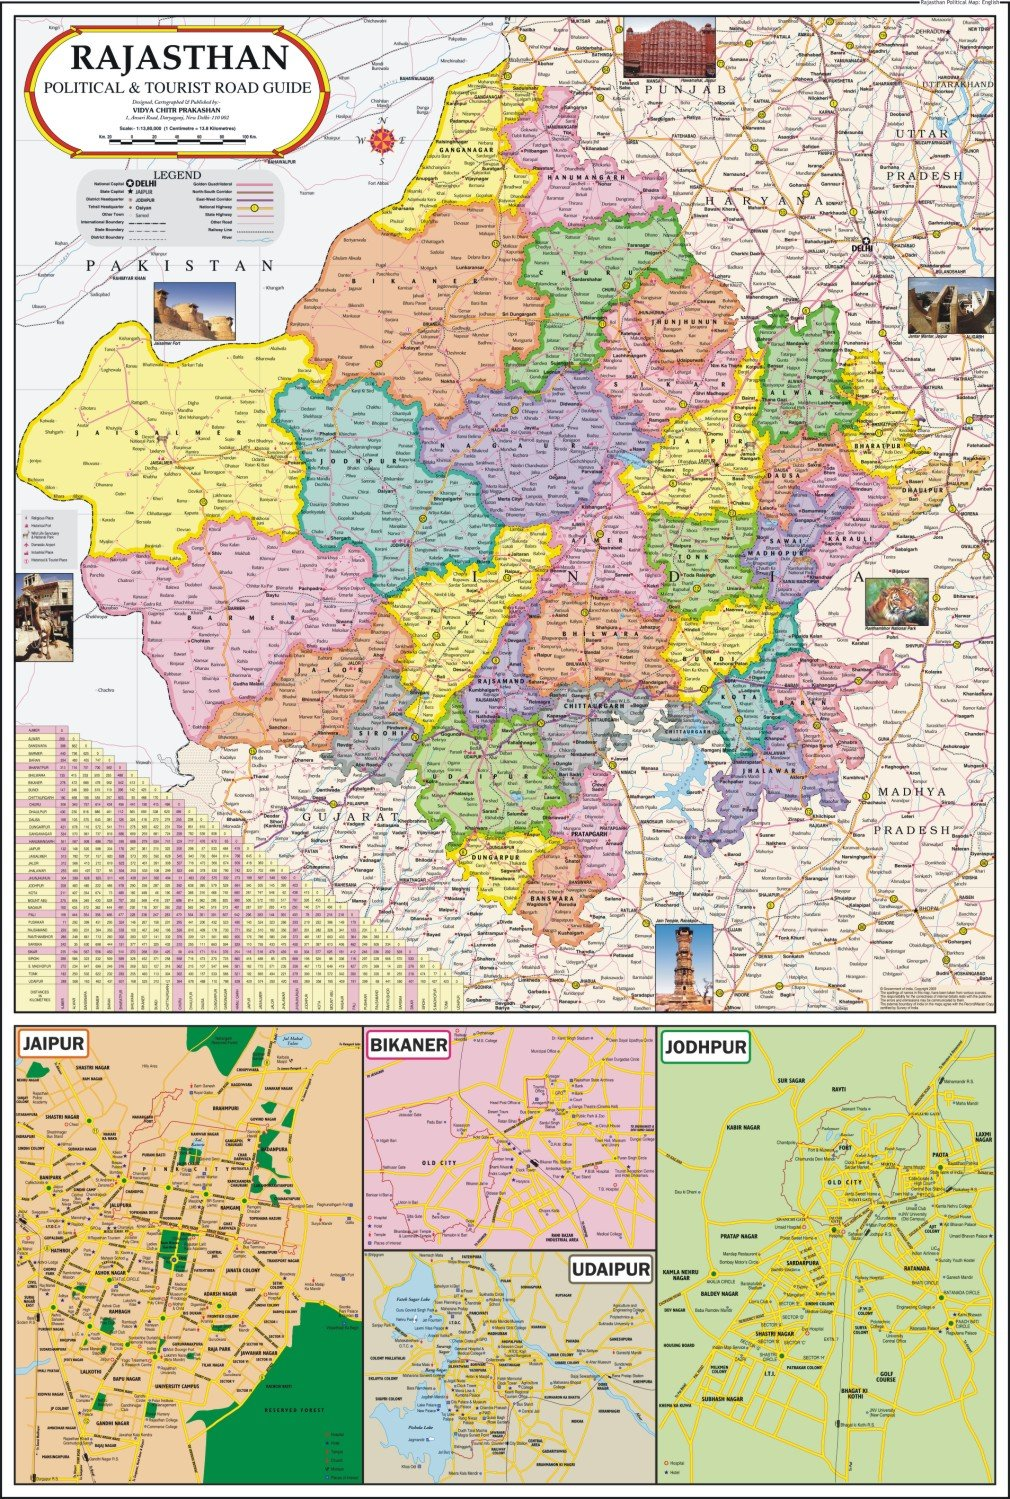 Buy Rajasthan Map Book Online at Low